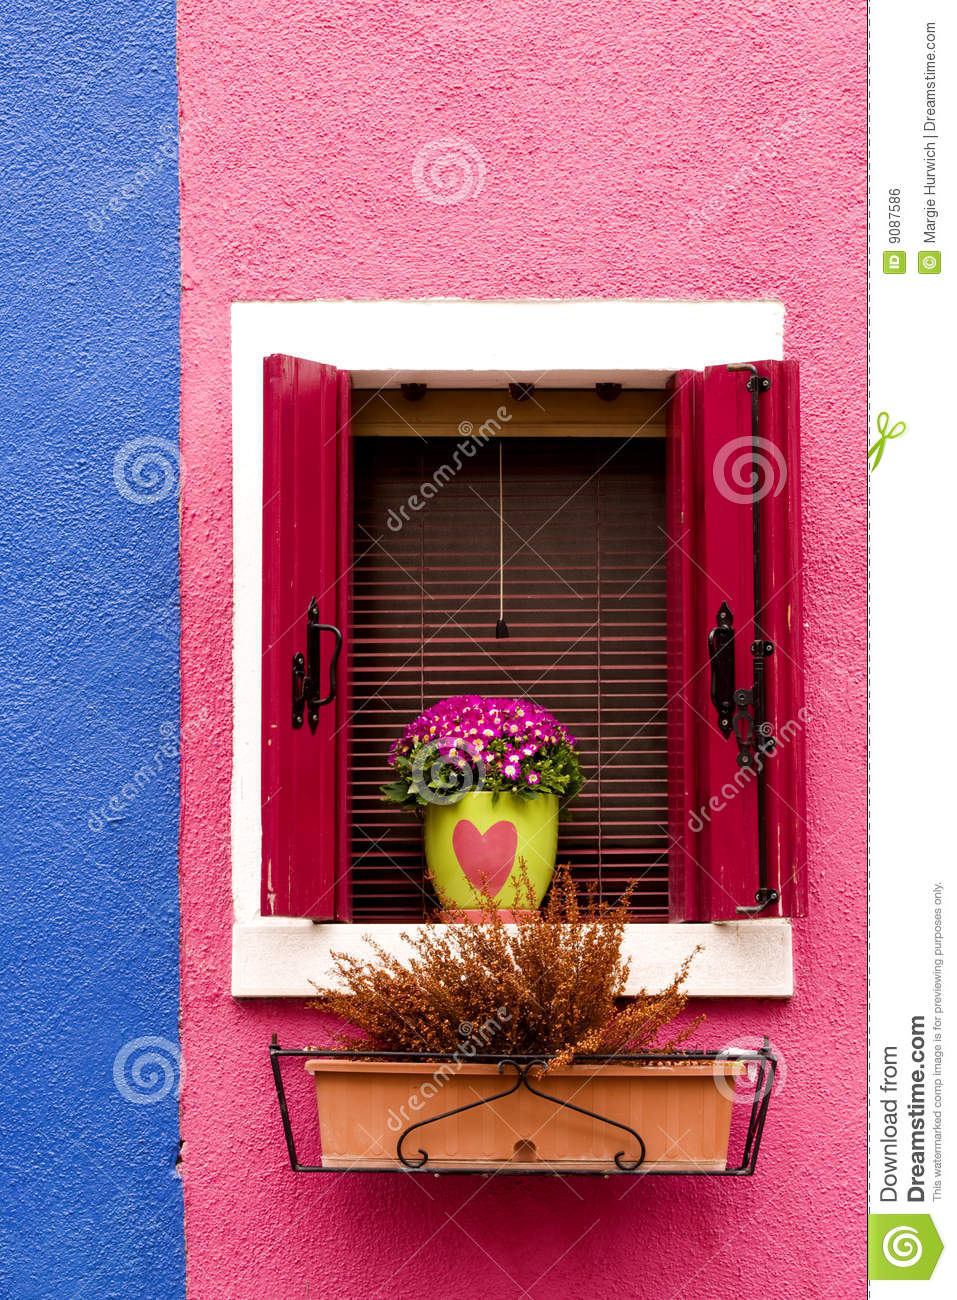 Royalty Free Stock Image Window Shutters Flowers Image9087586 on Traditional Bavarian House Plans